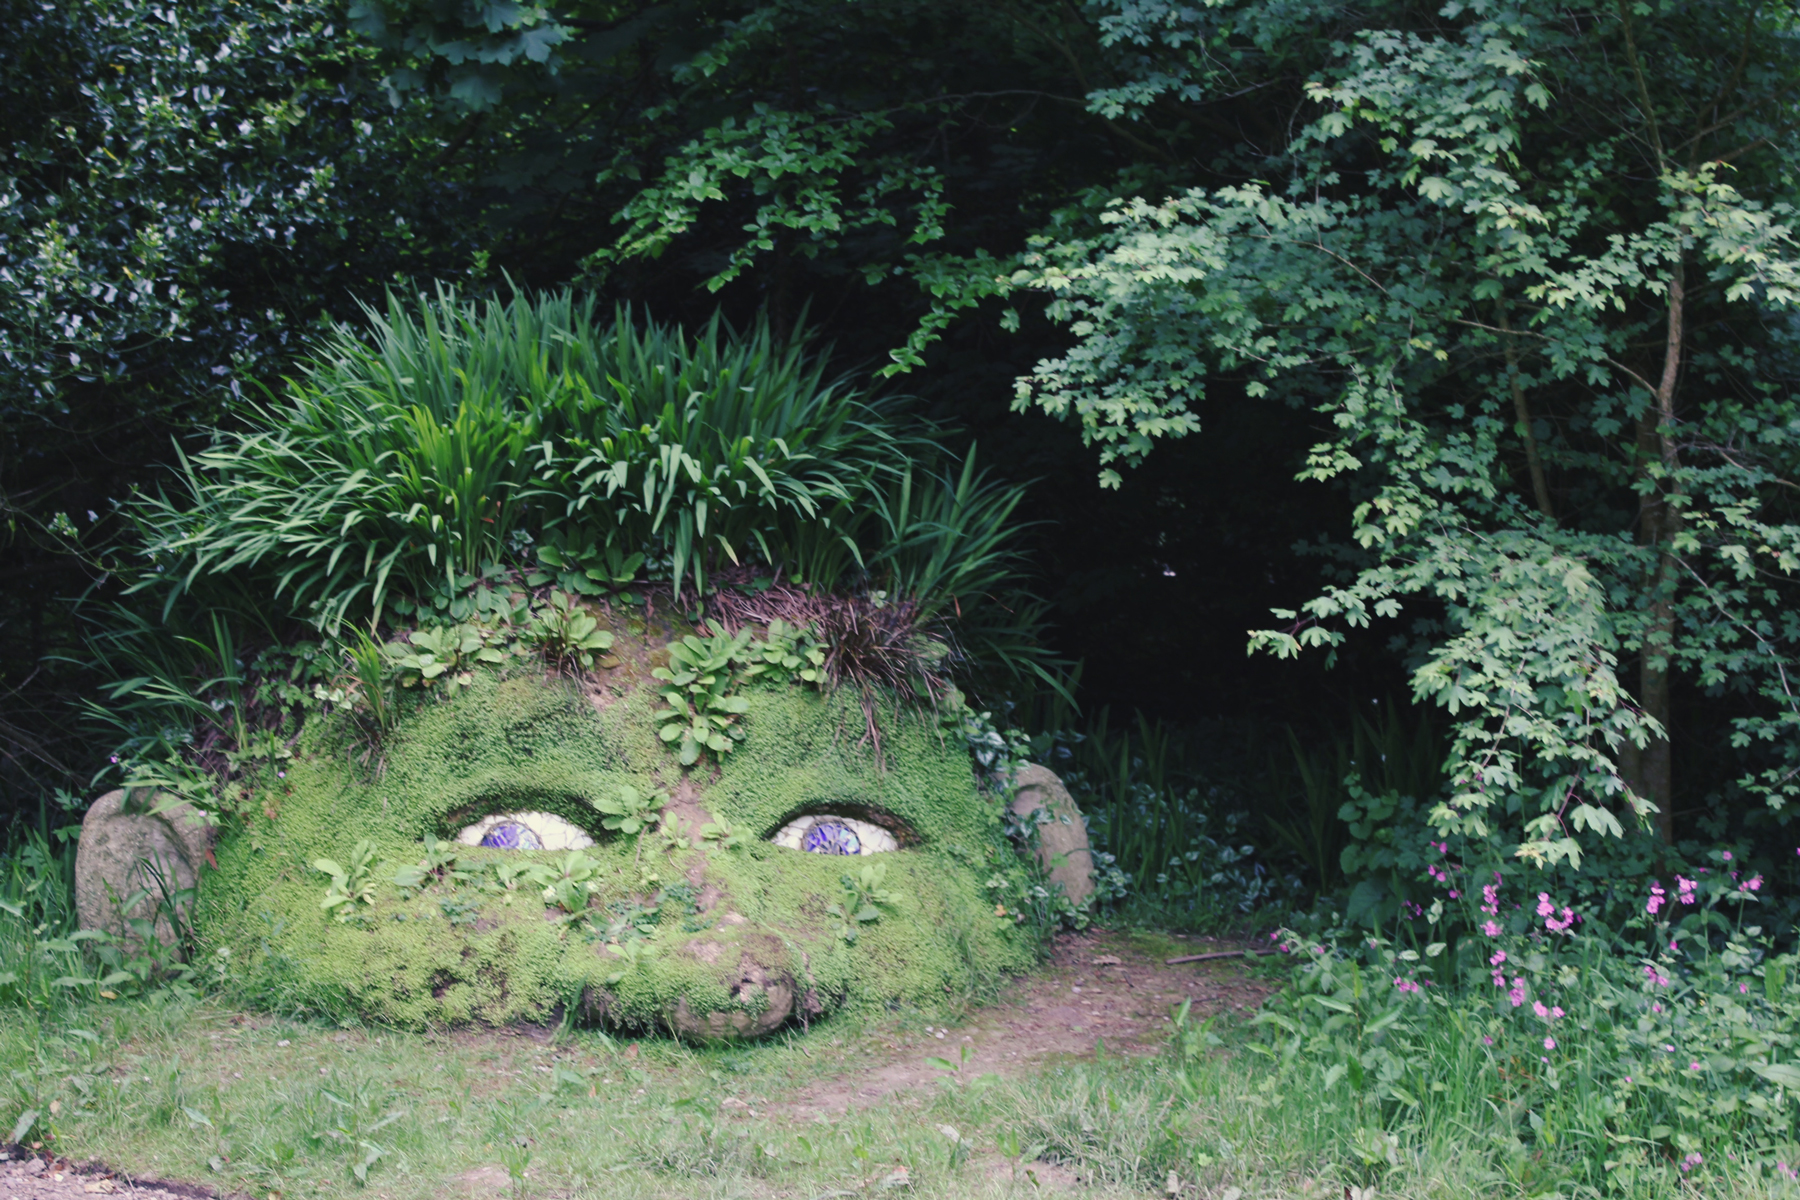 Peek a Boo Statue, Lost Gardens of Heligan, Cornwall